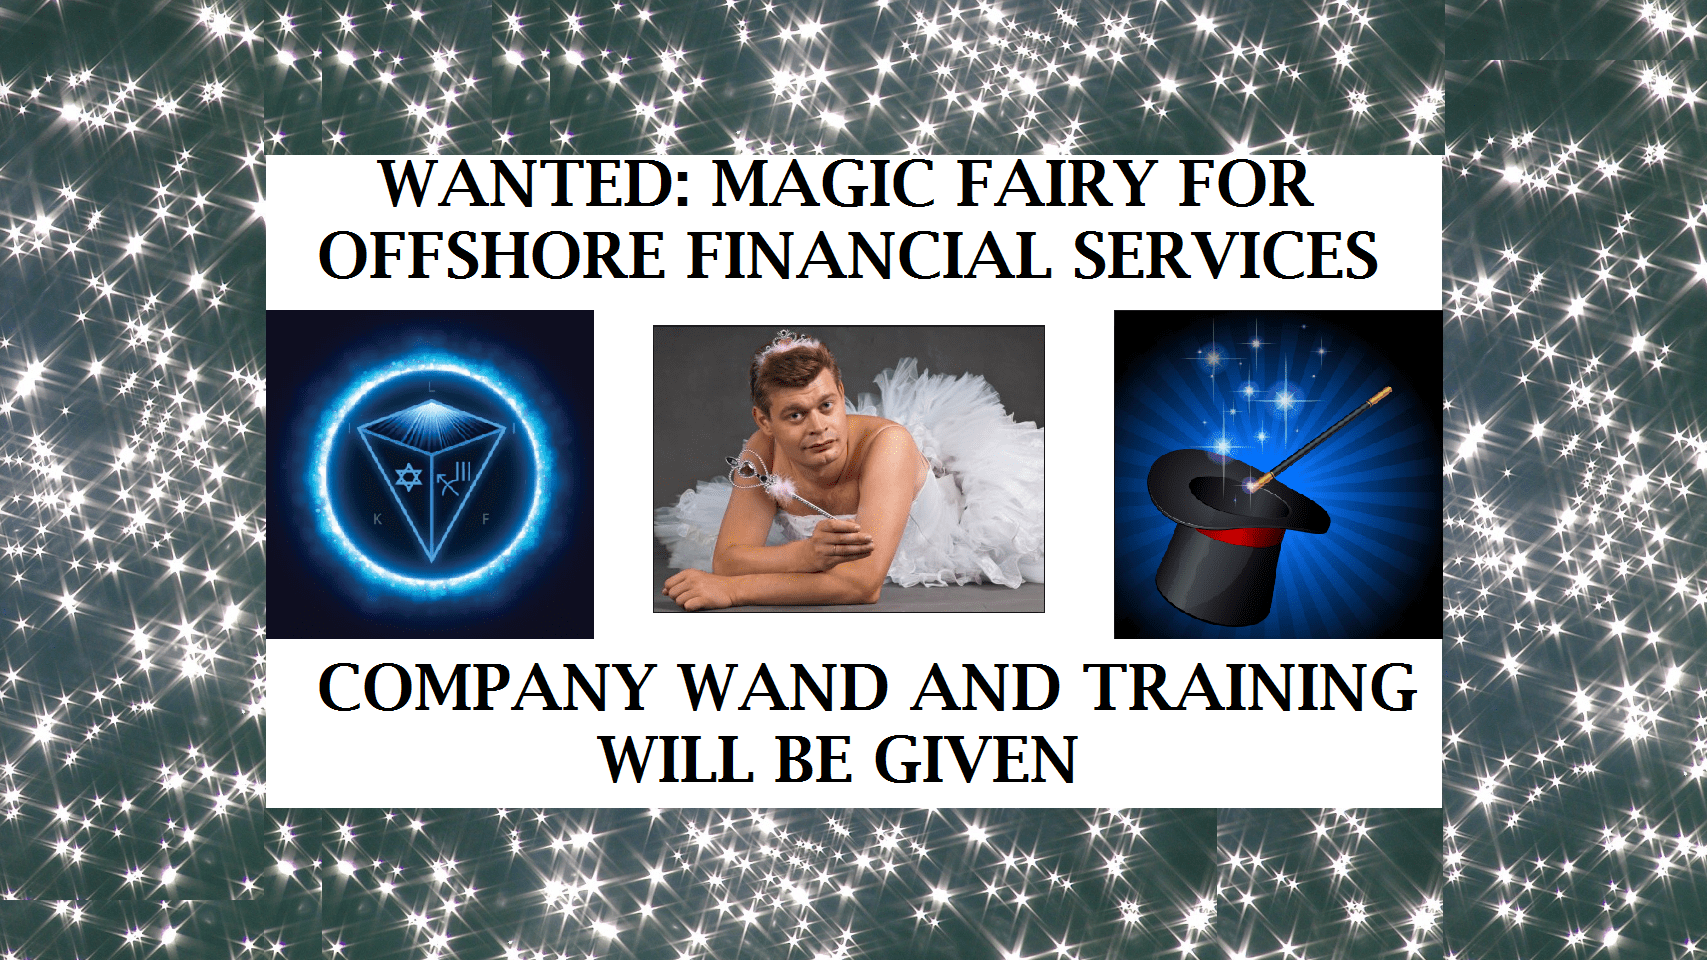 WANTED: MAGIC FAIRY TO CURE WHAT'S WRONG WITH FINANCIAL SERVICES OFFSHORE